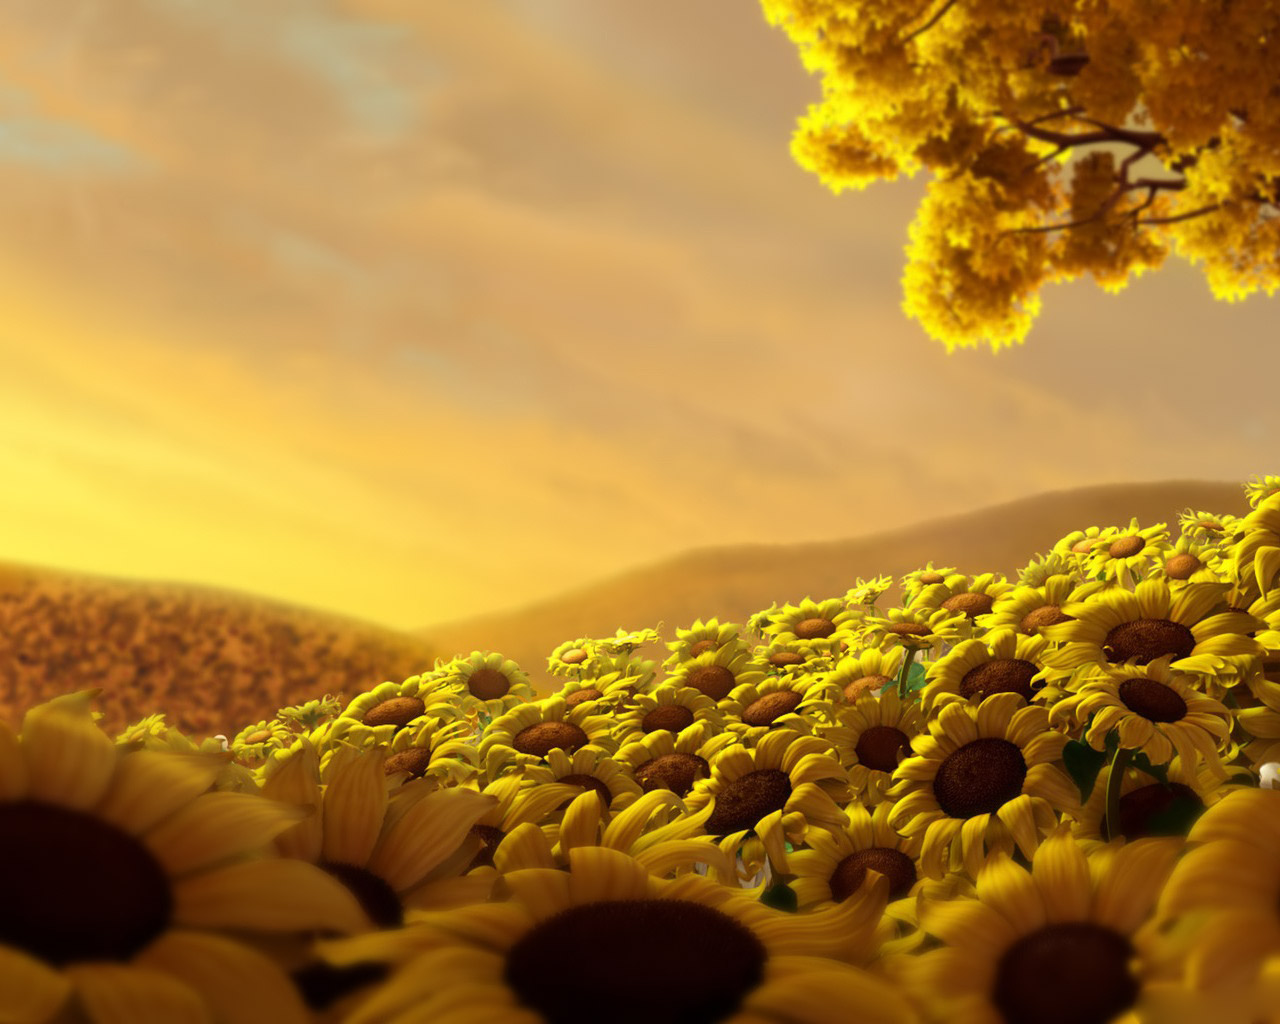 http://4.bp.blogspot.com/_LYSAqYAZ1do/TQrww6EoGRI/AAAAAAAAAH8/2mJkl0ZyTjc/s1600/Sunflowers_meadow_-_digital_3d_wallpaper.jpg